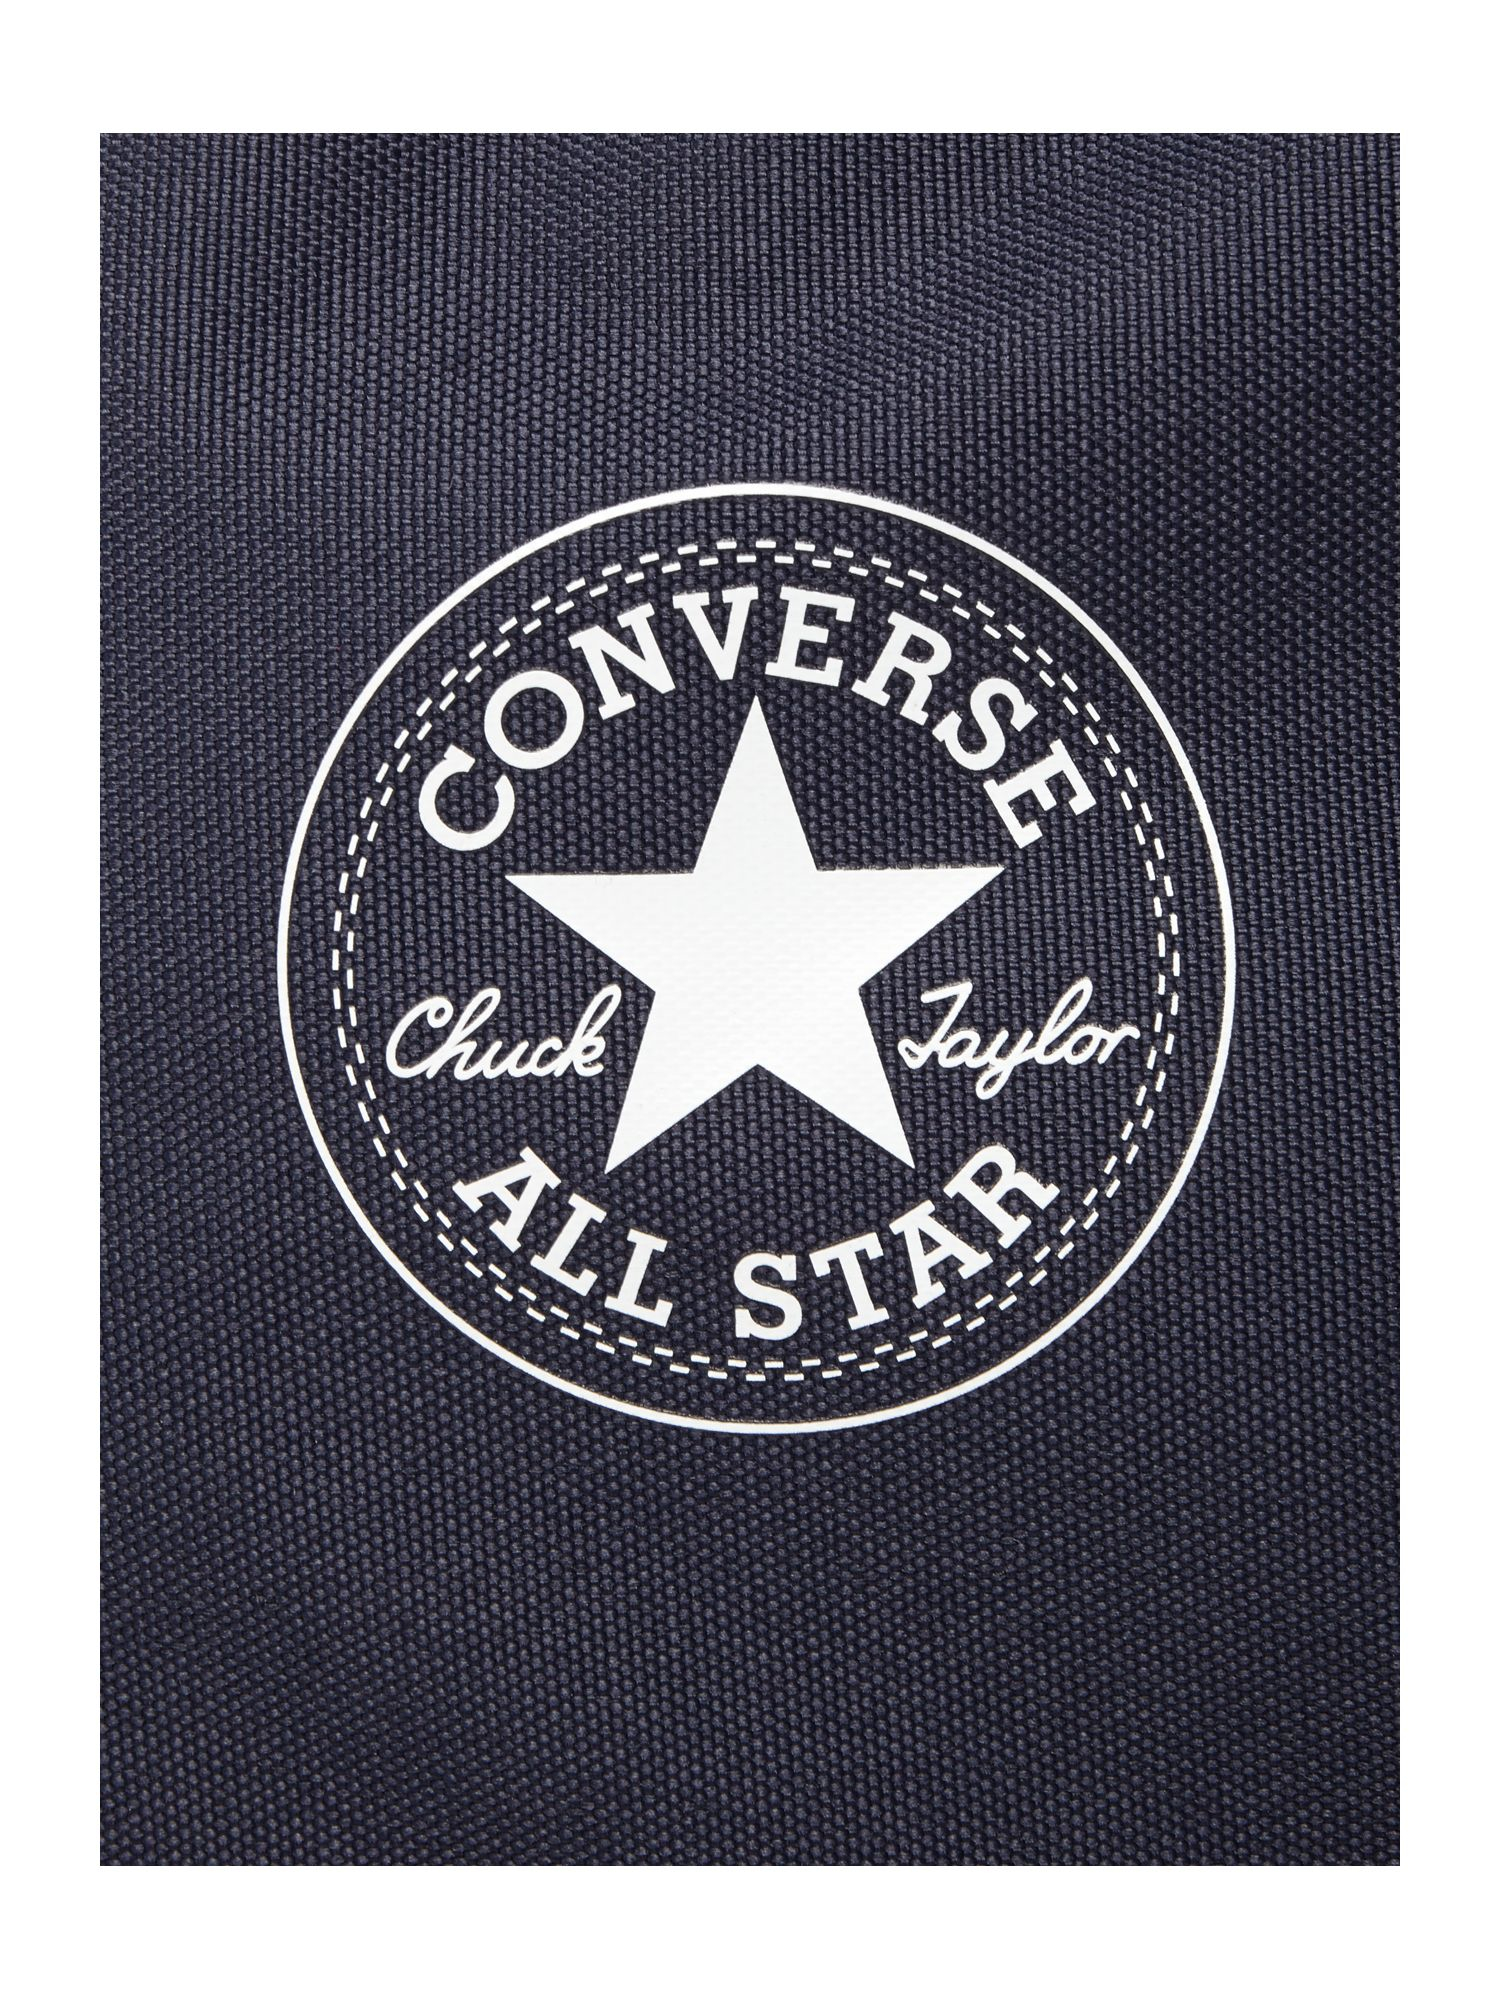 Converse Horizontal Zip Back Pack in Black for Men - Lyst 1a331b921c